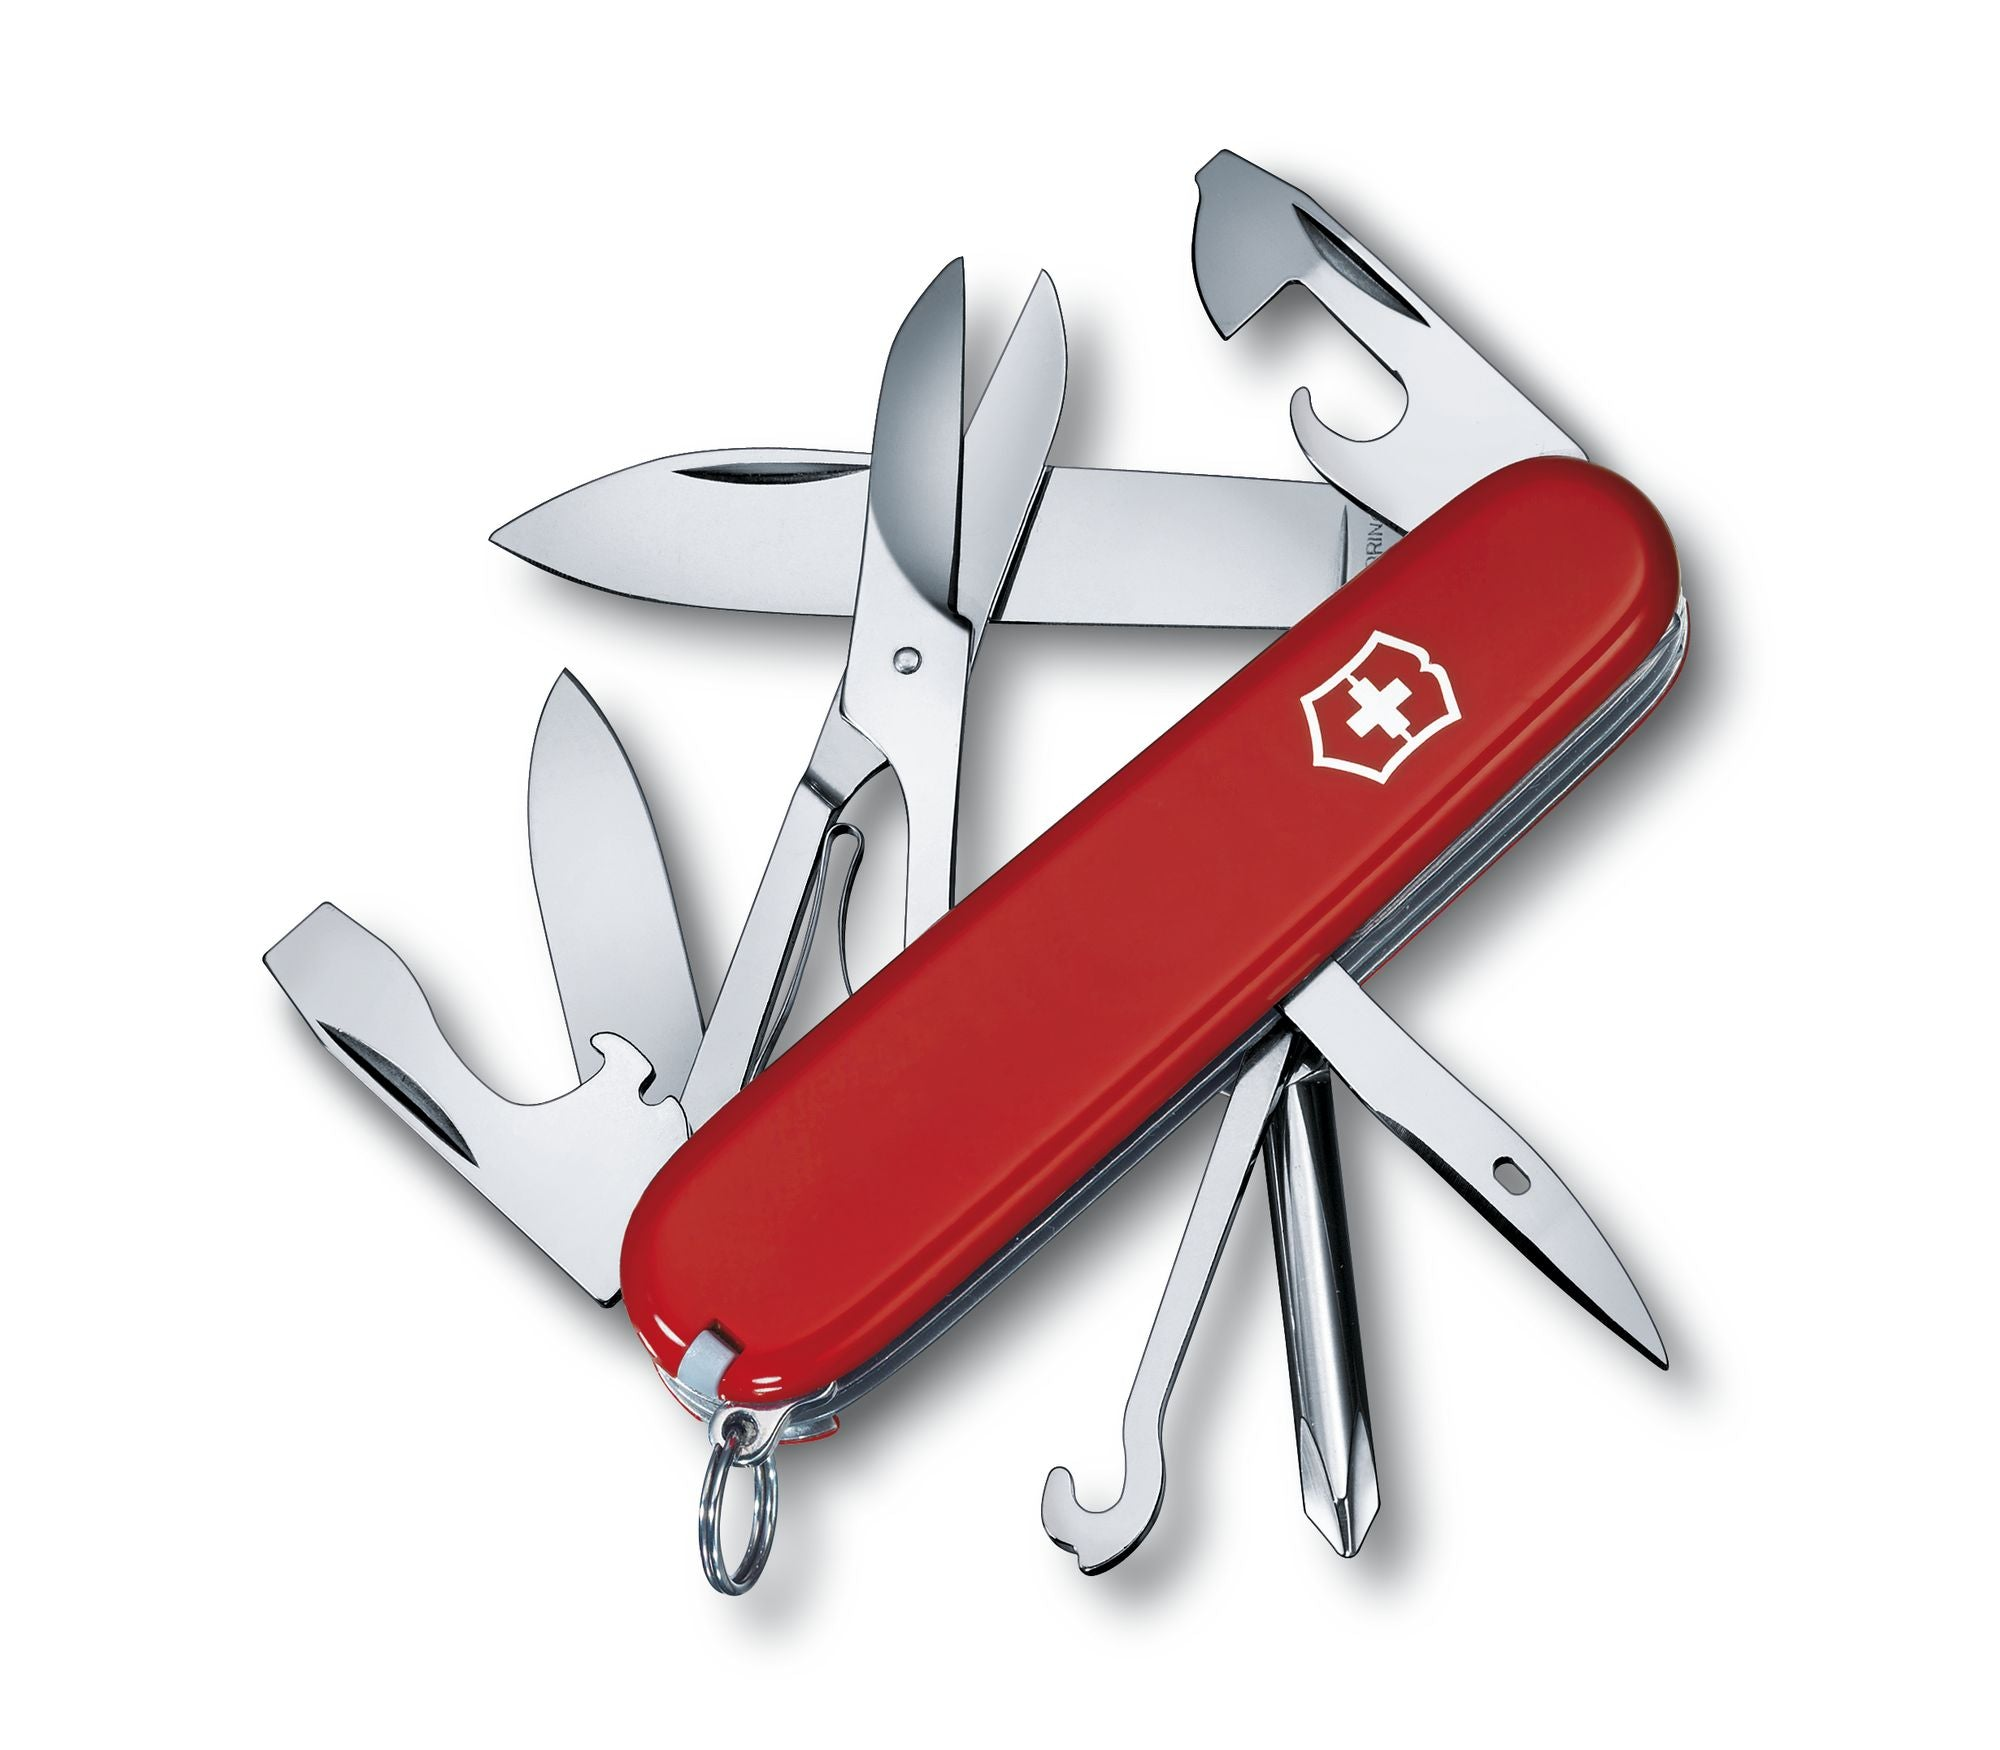 Swiss Army Pocket Knife, Super Tinker, Canada